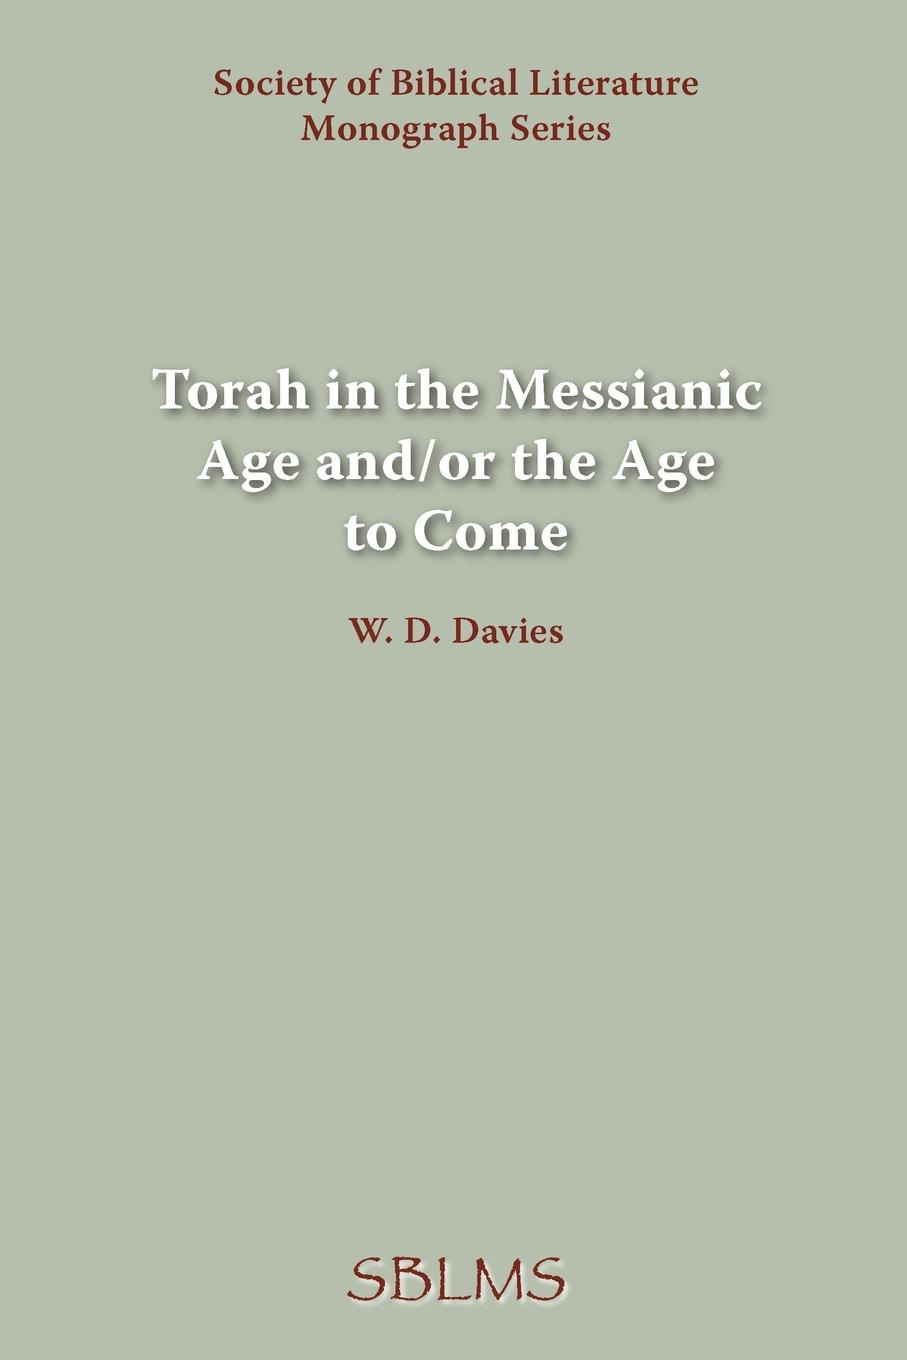 Фото - W. D. Davies Torah in the Messianic Age and/or the Age to Come nuklear age